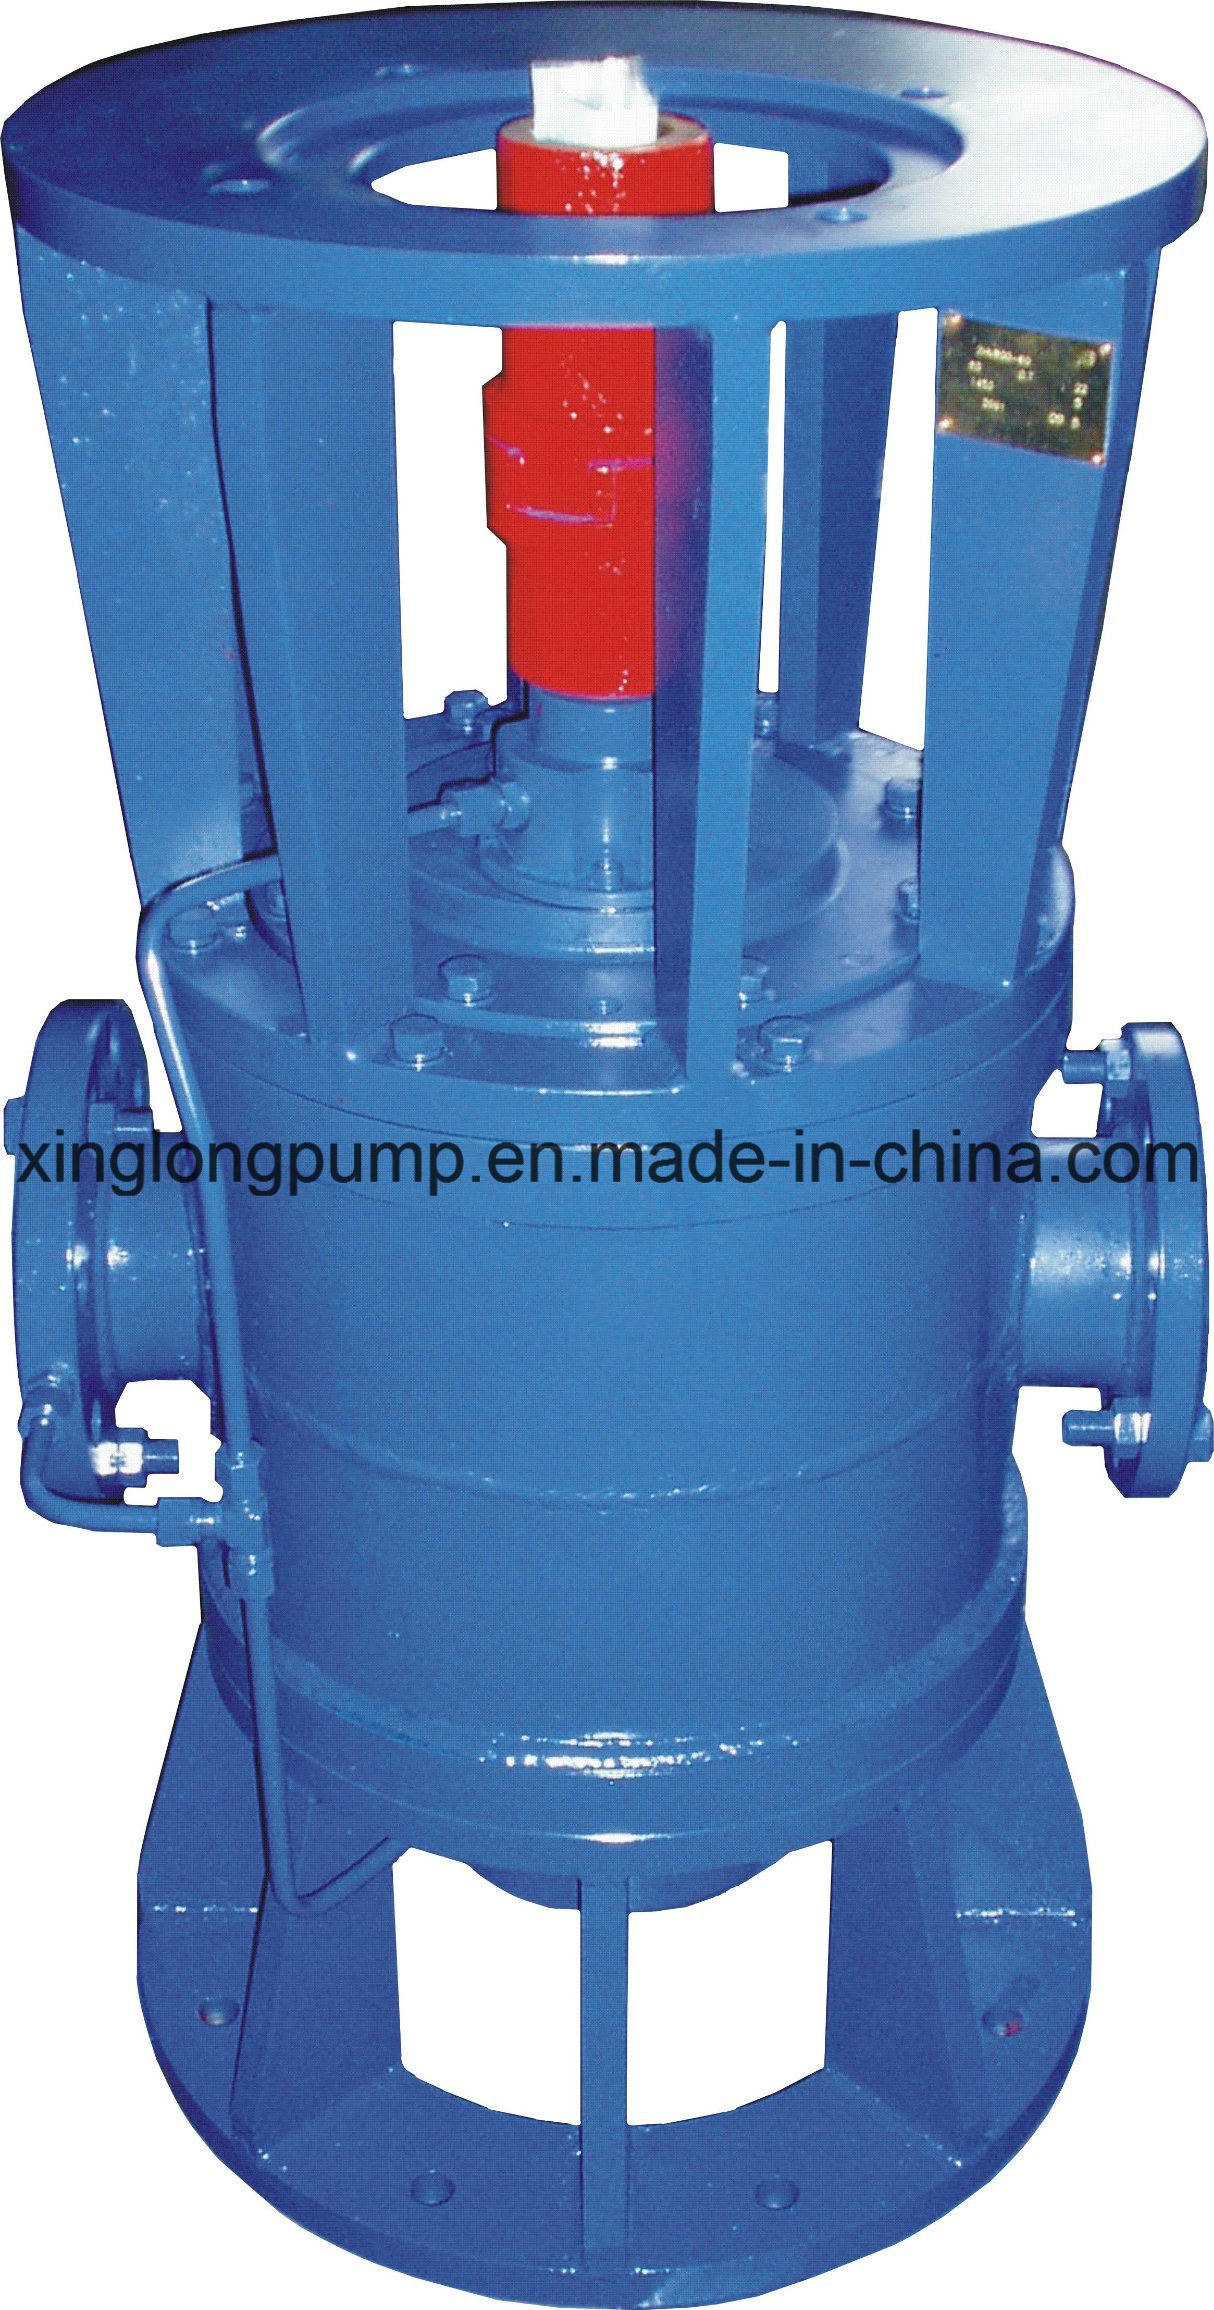 Xinglong Horizontal Double Screw Pumps for Viscous Liquid